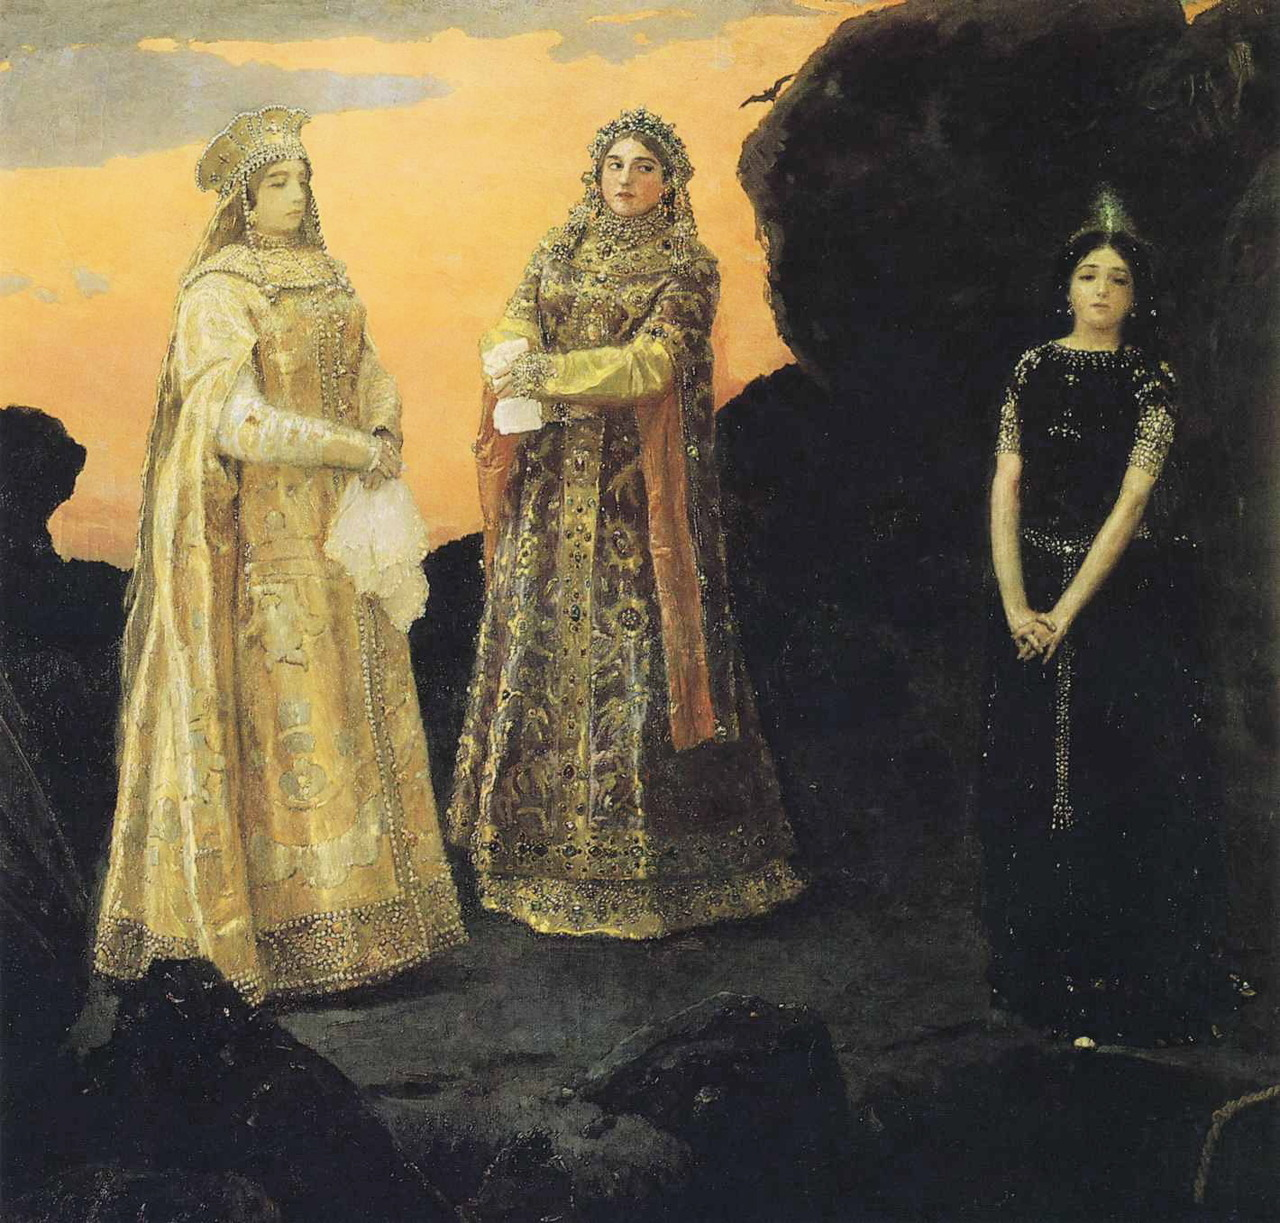 masterofthemountain:  Viktor Vasnetsov - Three Tsarevnas of the Underground Kingdom, 1879